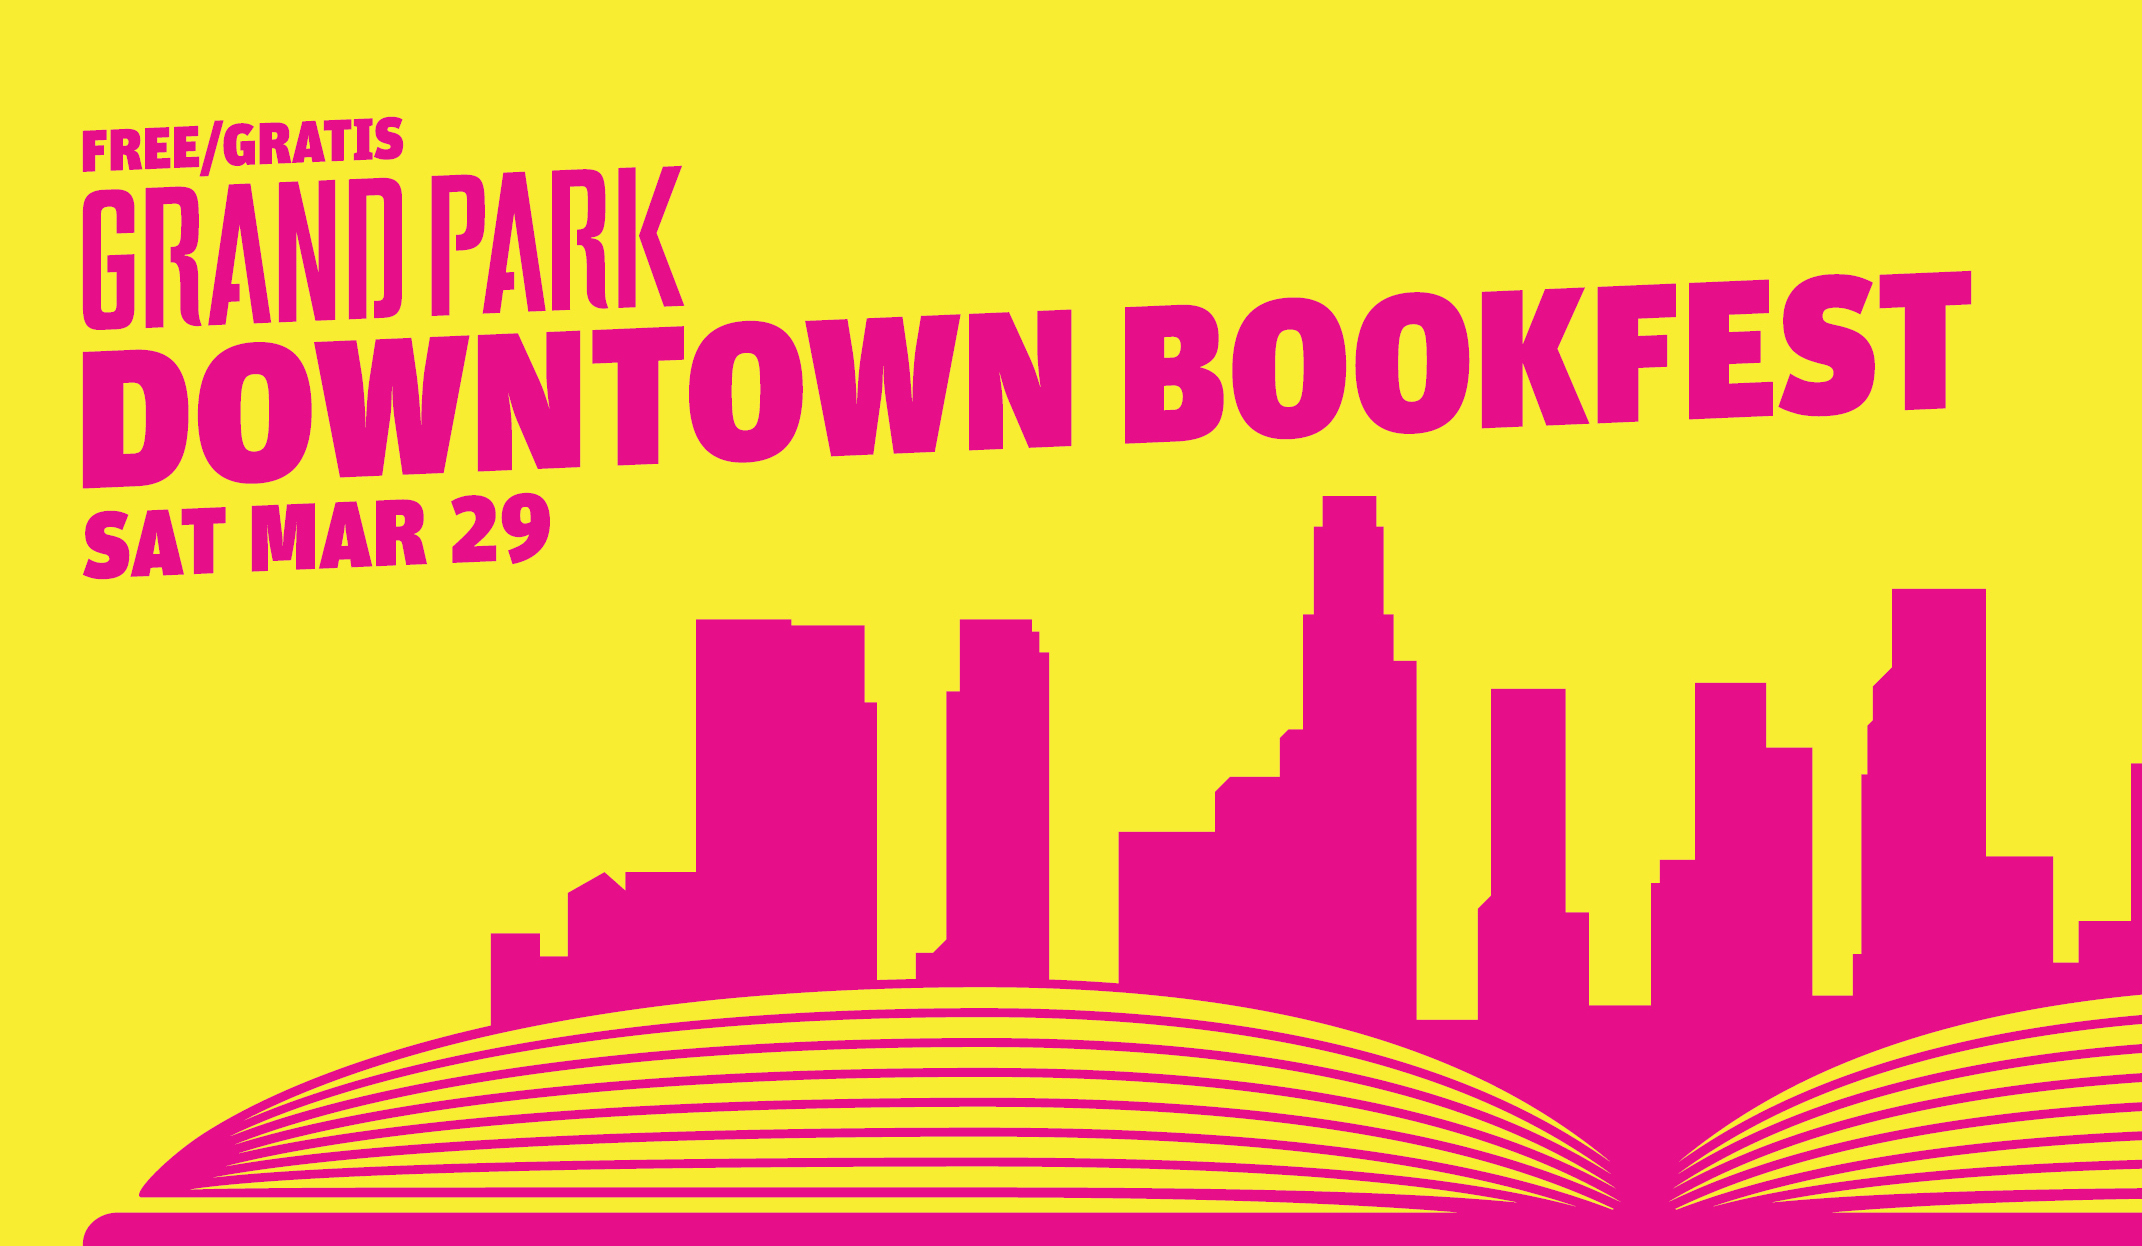 The 2nd Annual Grand Park Downtown BookFest